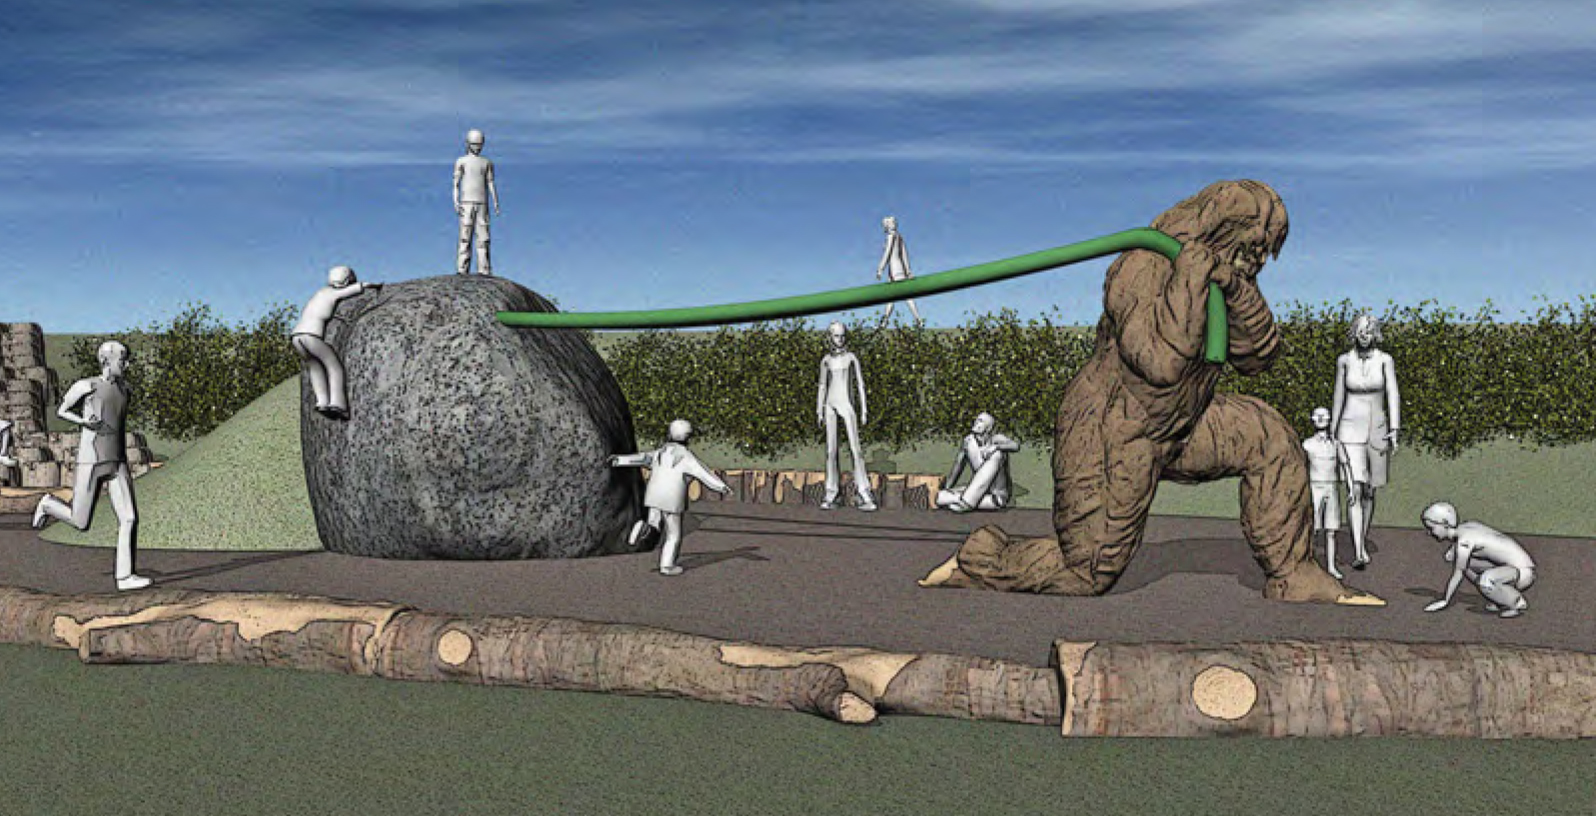 A computer generated 3d design depicting Children Playing sasquatch eegah and Erric the Erratic